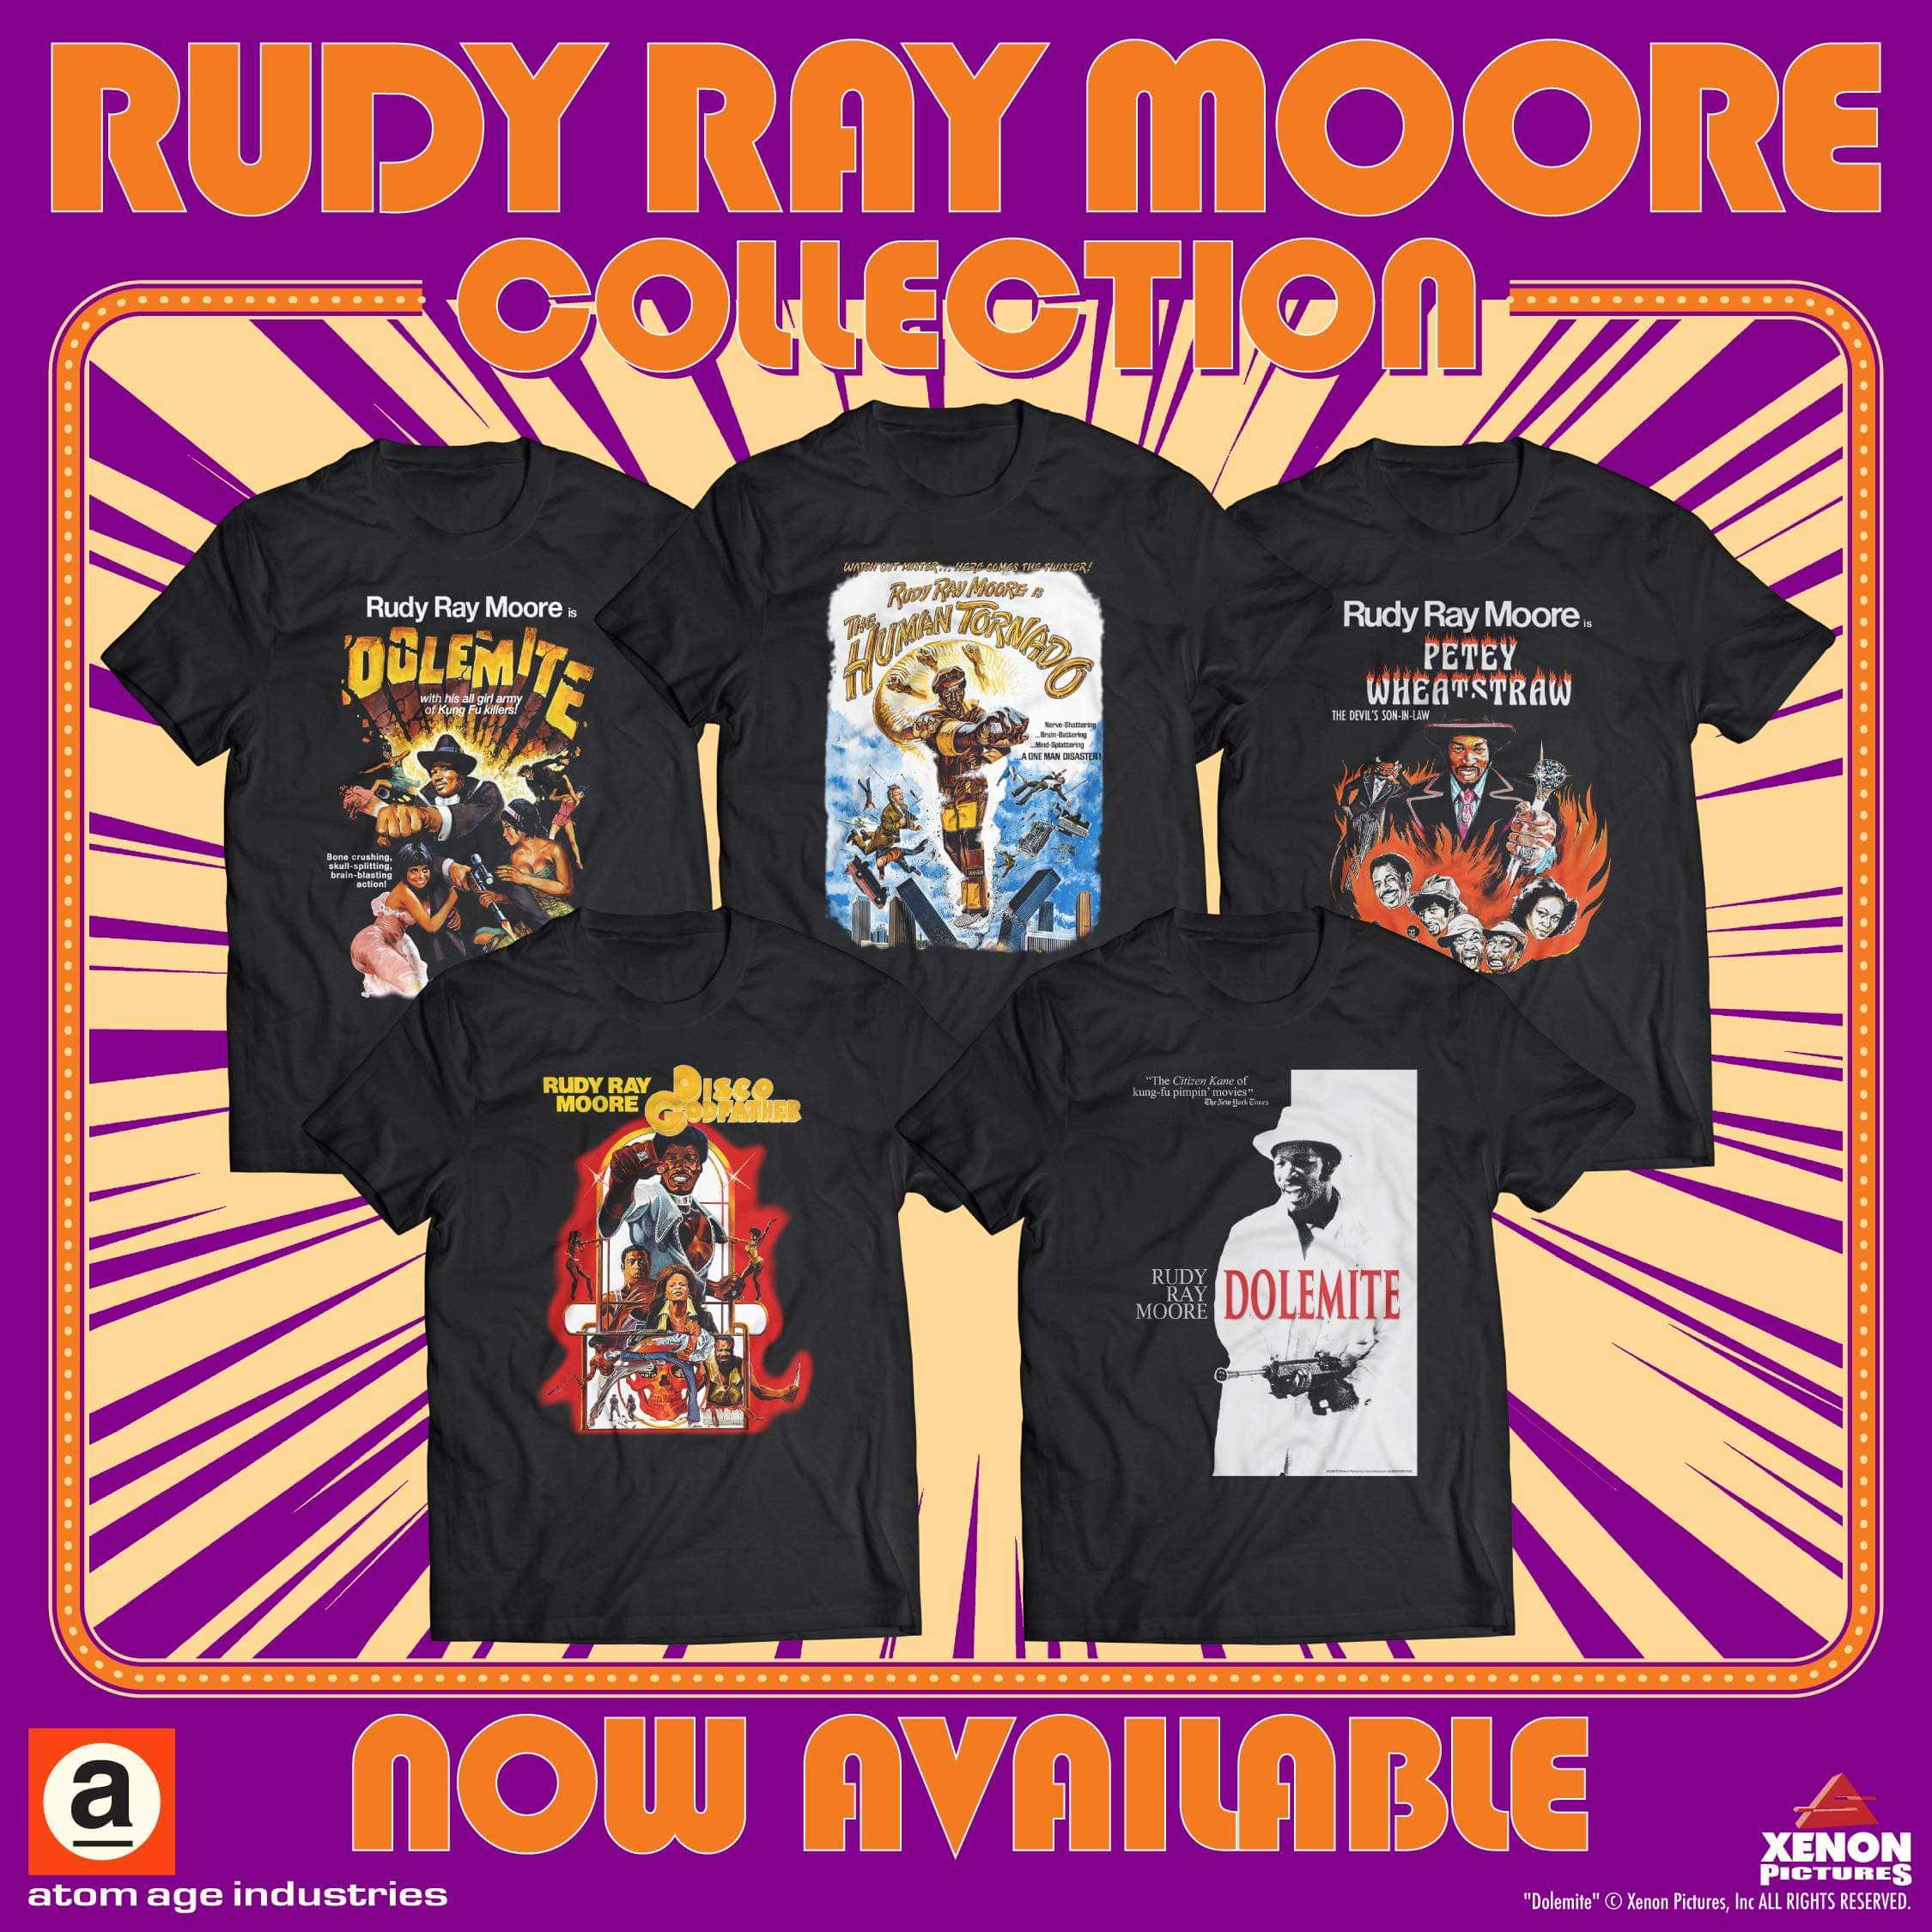 The official Rudy Ray Moore t-shirt collection!